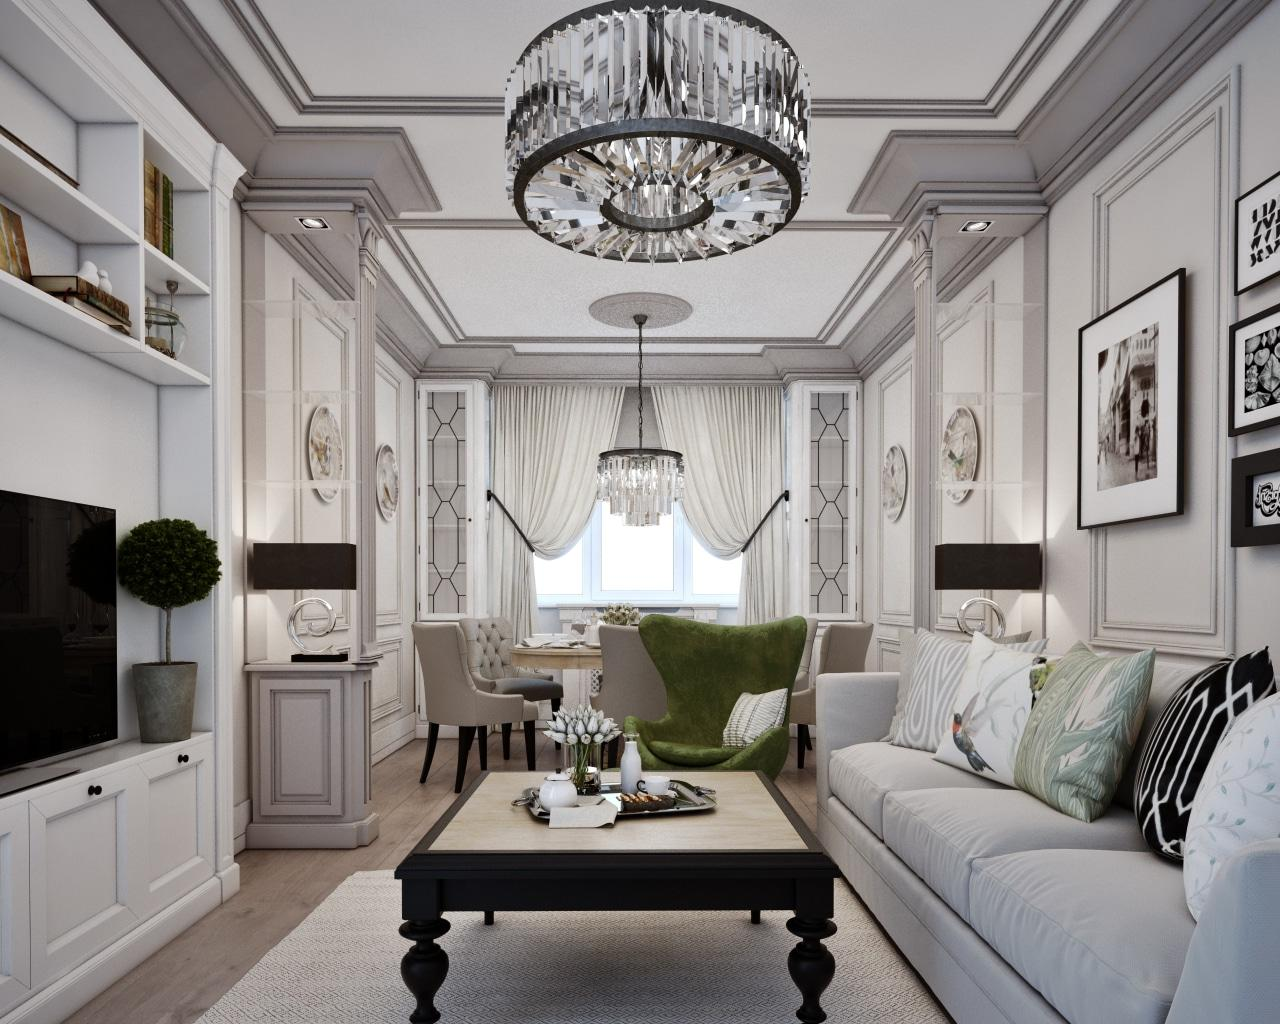 Traditional Interior Design Ideas: Lightweight Classics. Wainscoted walls and stucco framed ceiling of the Classic white living room